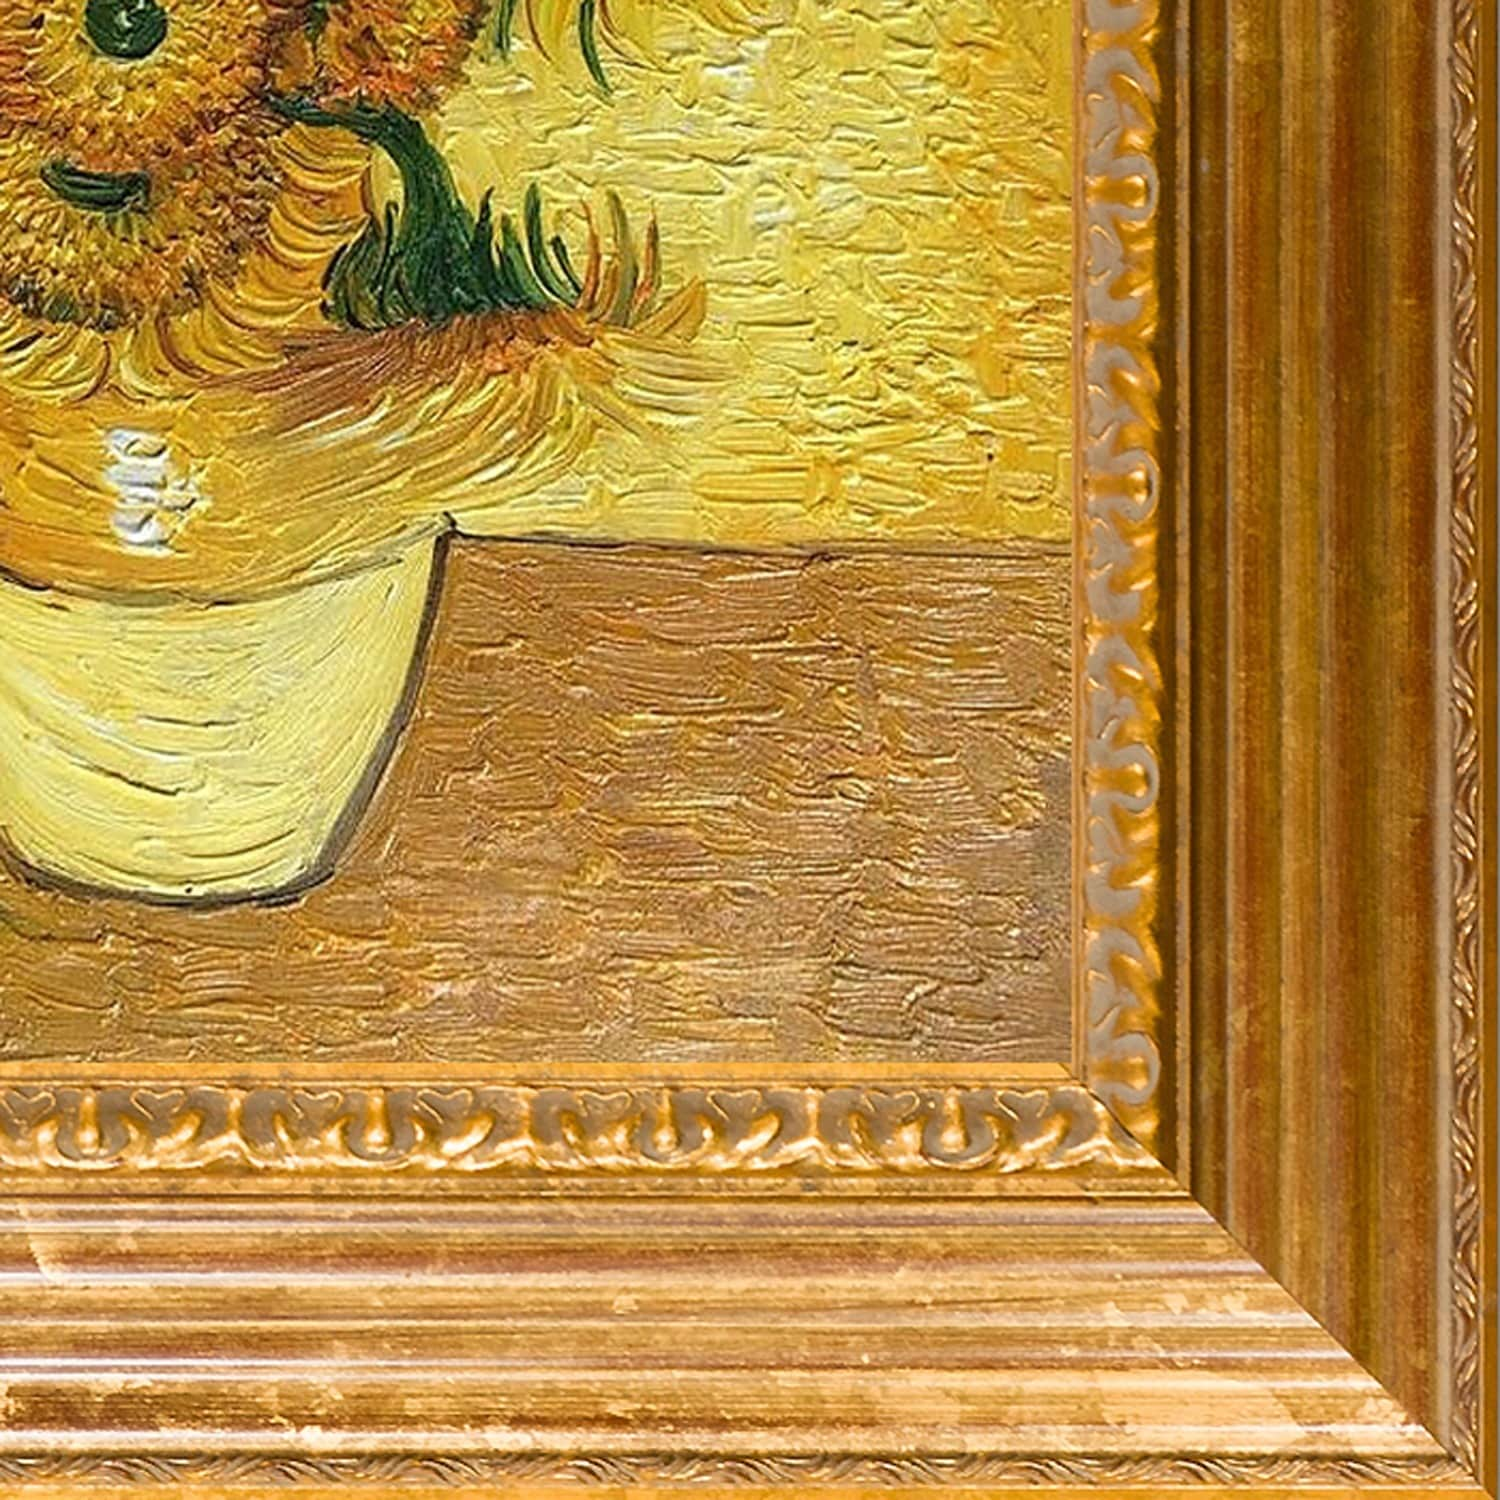 Vincent van gogh vase with fifteen sunflowers hand painted vincent van gogh vase with fifteen sunflowers hand painted framed canvas art free shipping today overstock 15626509 reviewsmspy